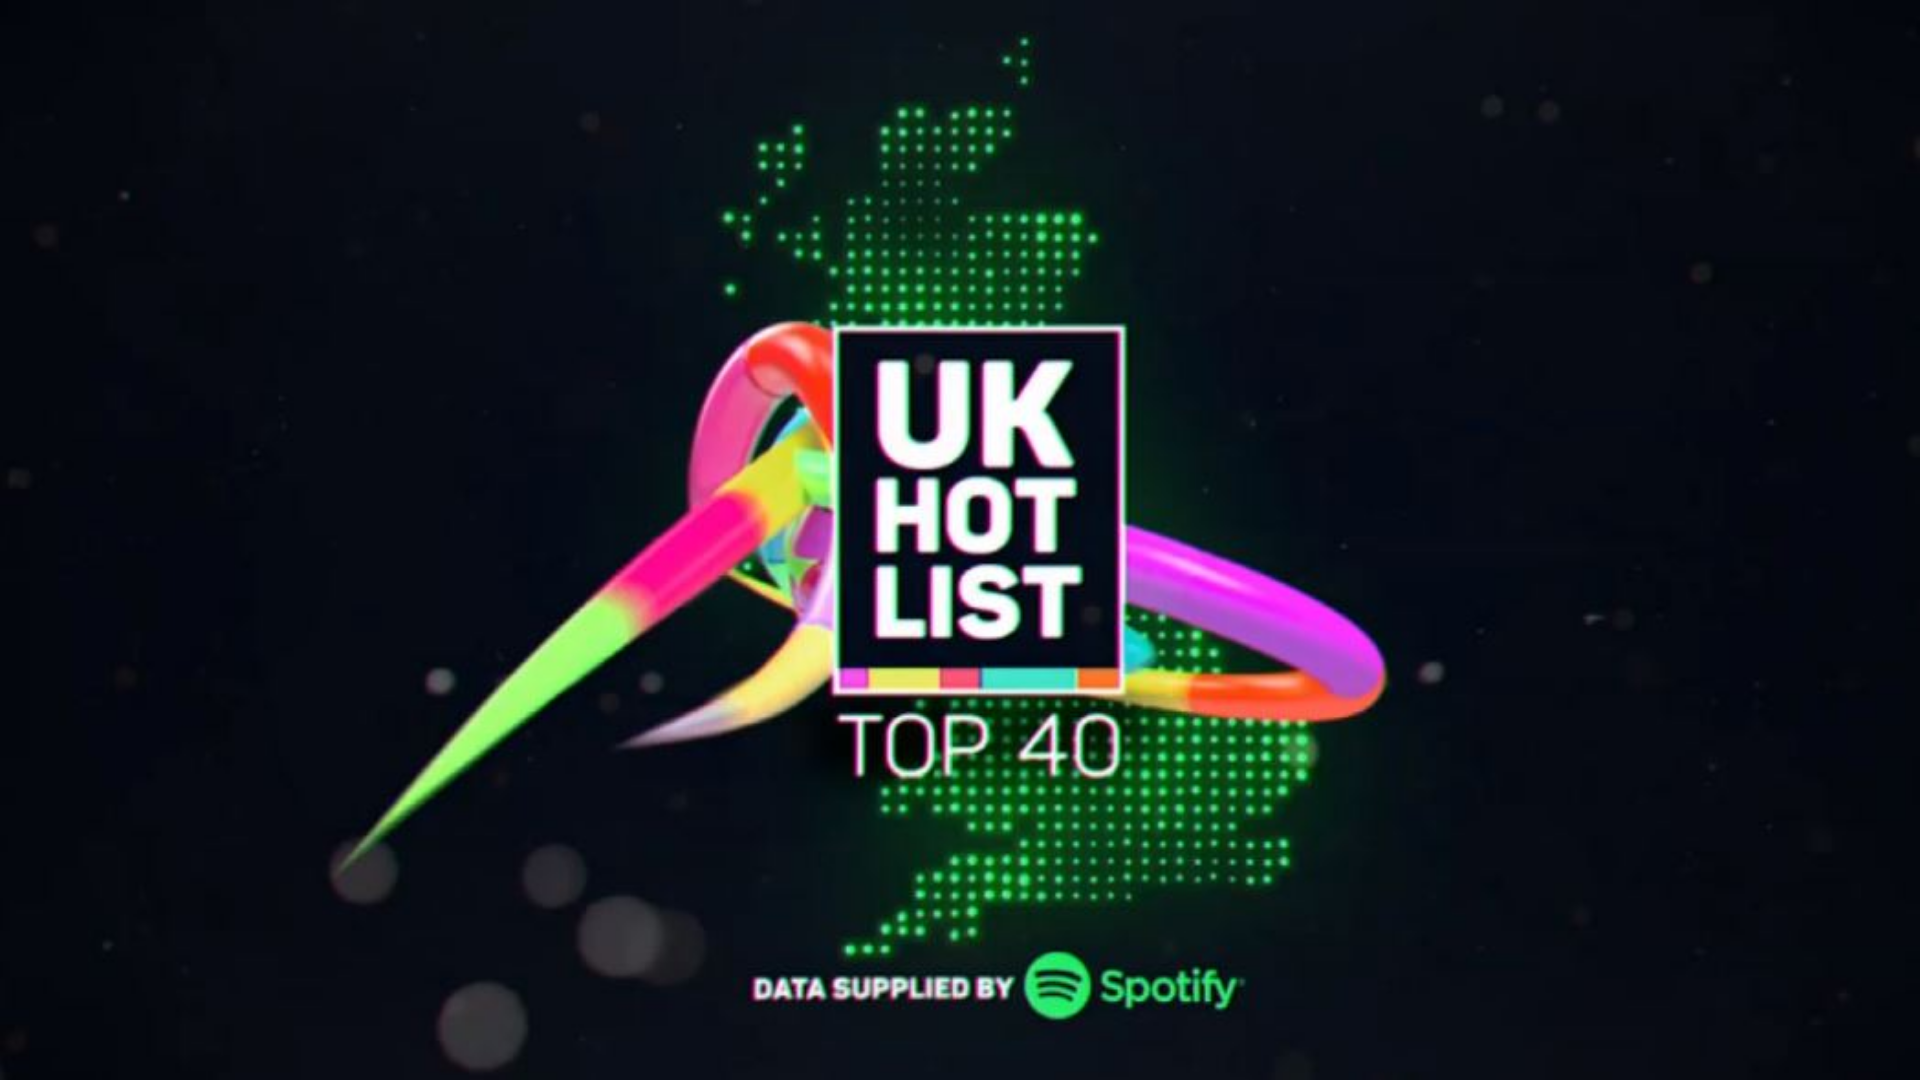 UK HOTLIST Top 40